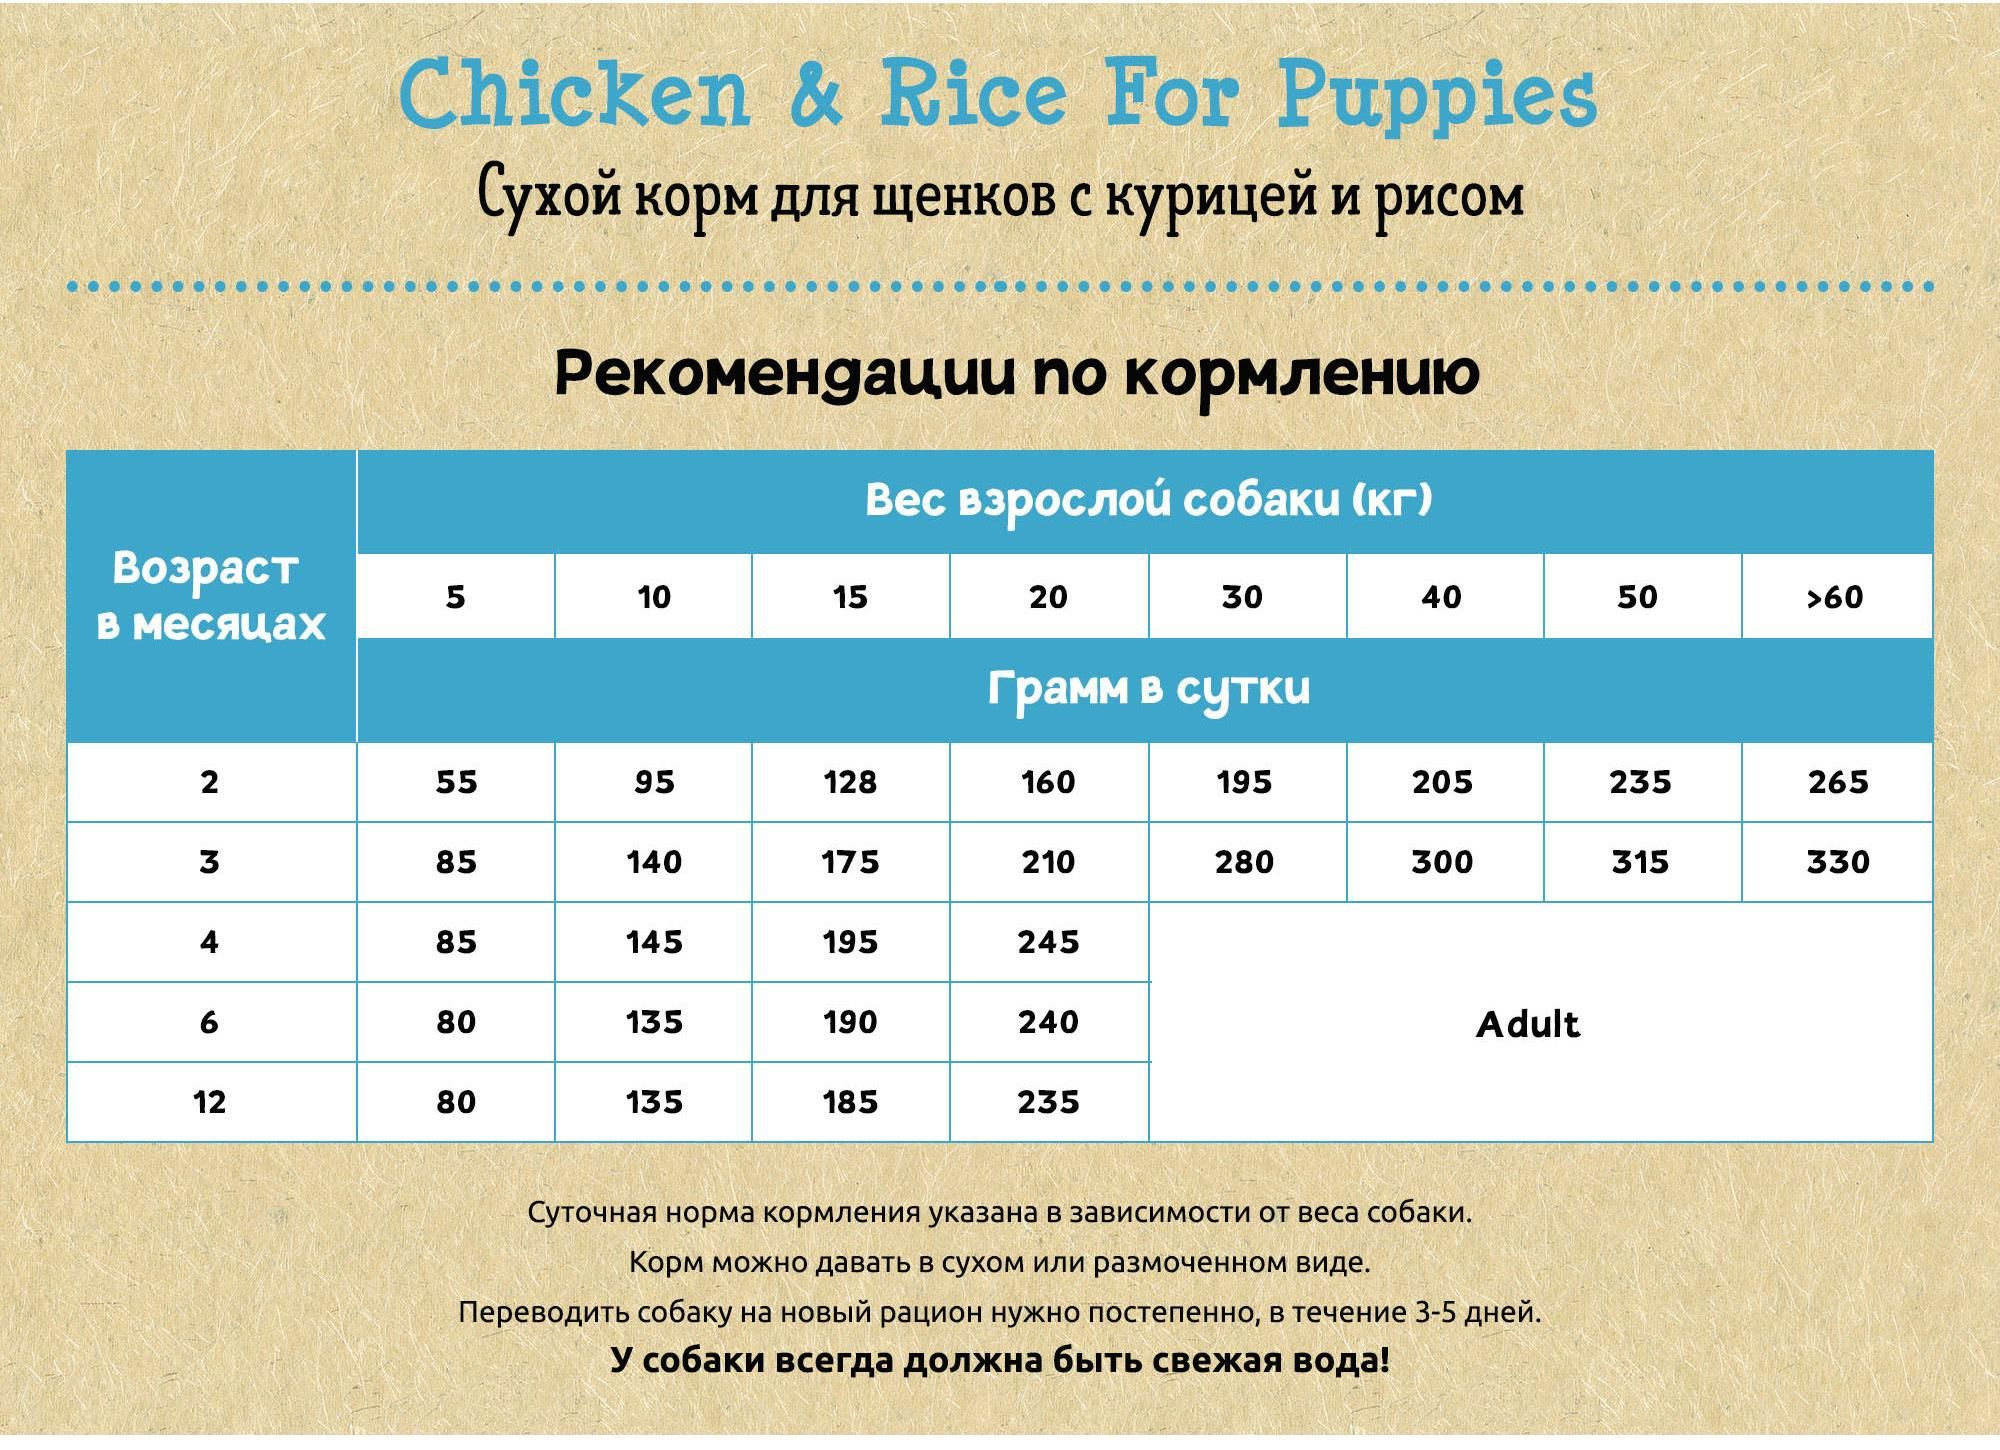 Planet Pet Chicken & Rice For Puppies. Фото №3